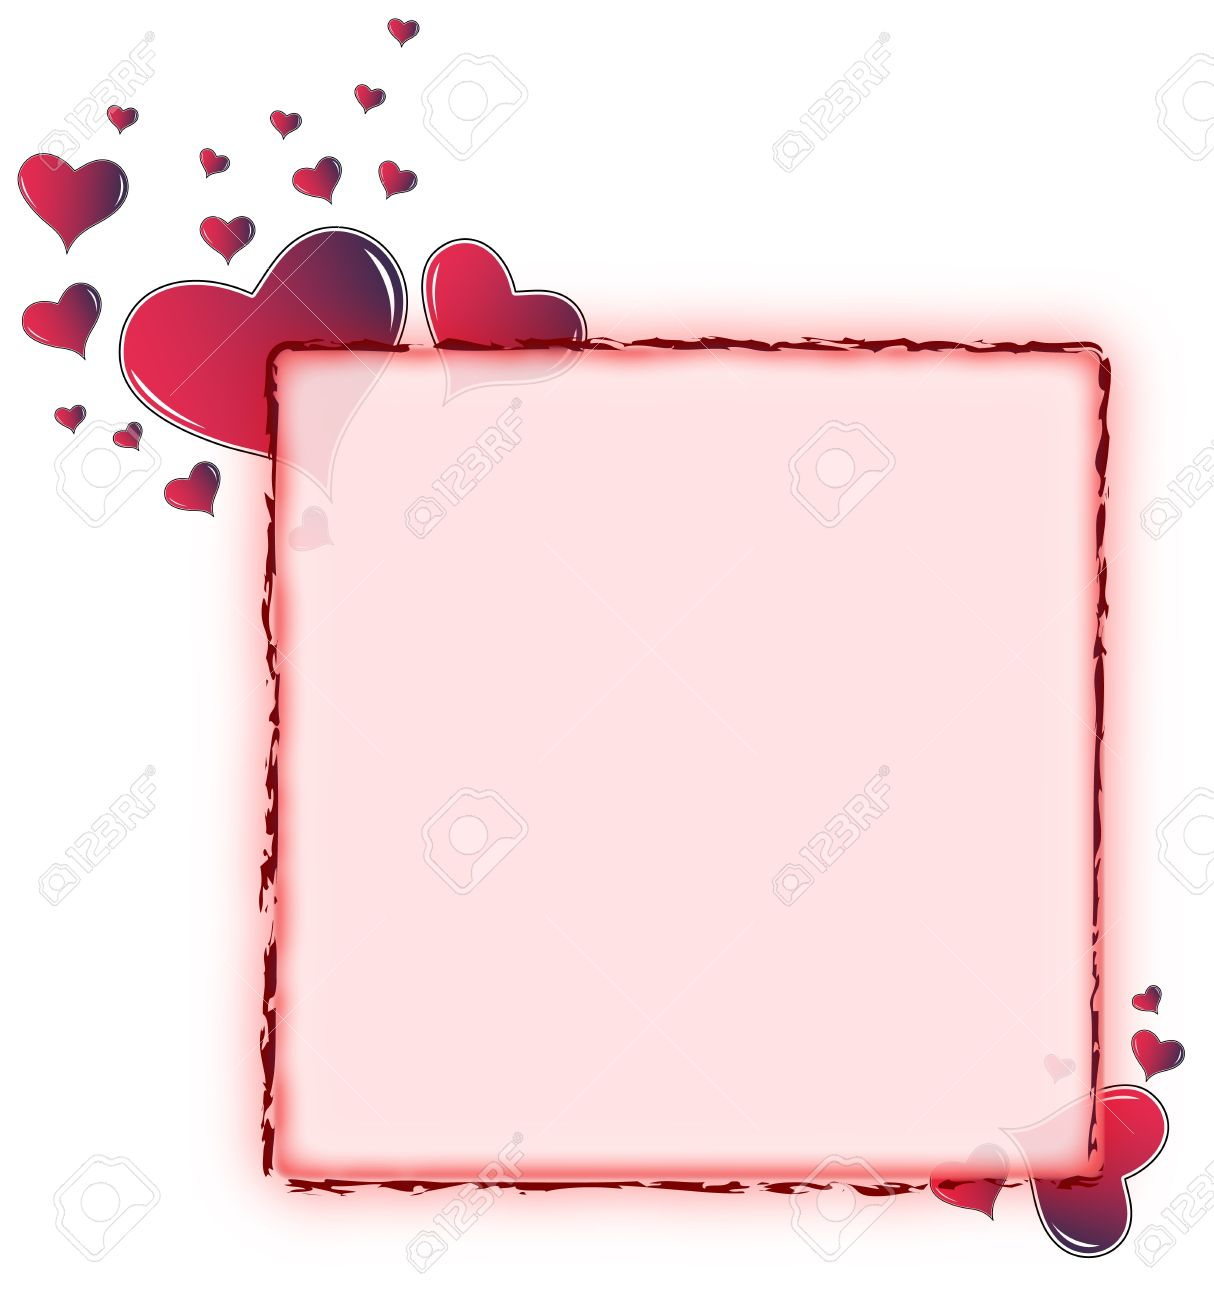 Valentine Card. Ideal Frame For Valentines Day Portrait Stock Photo ...